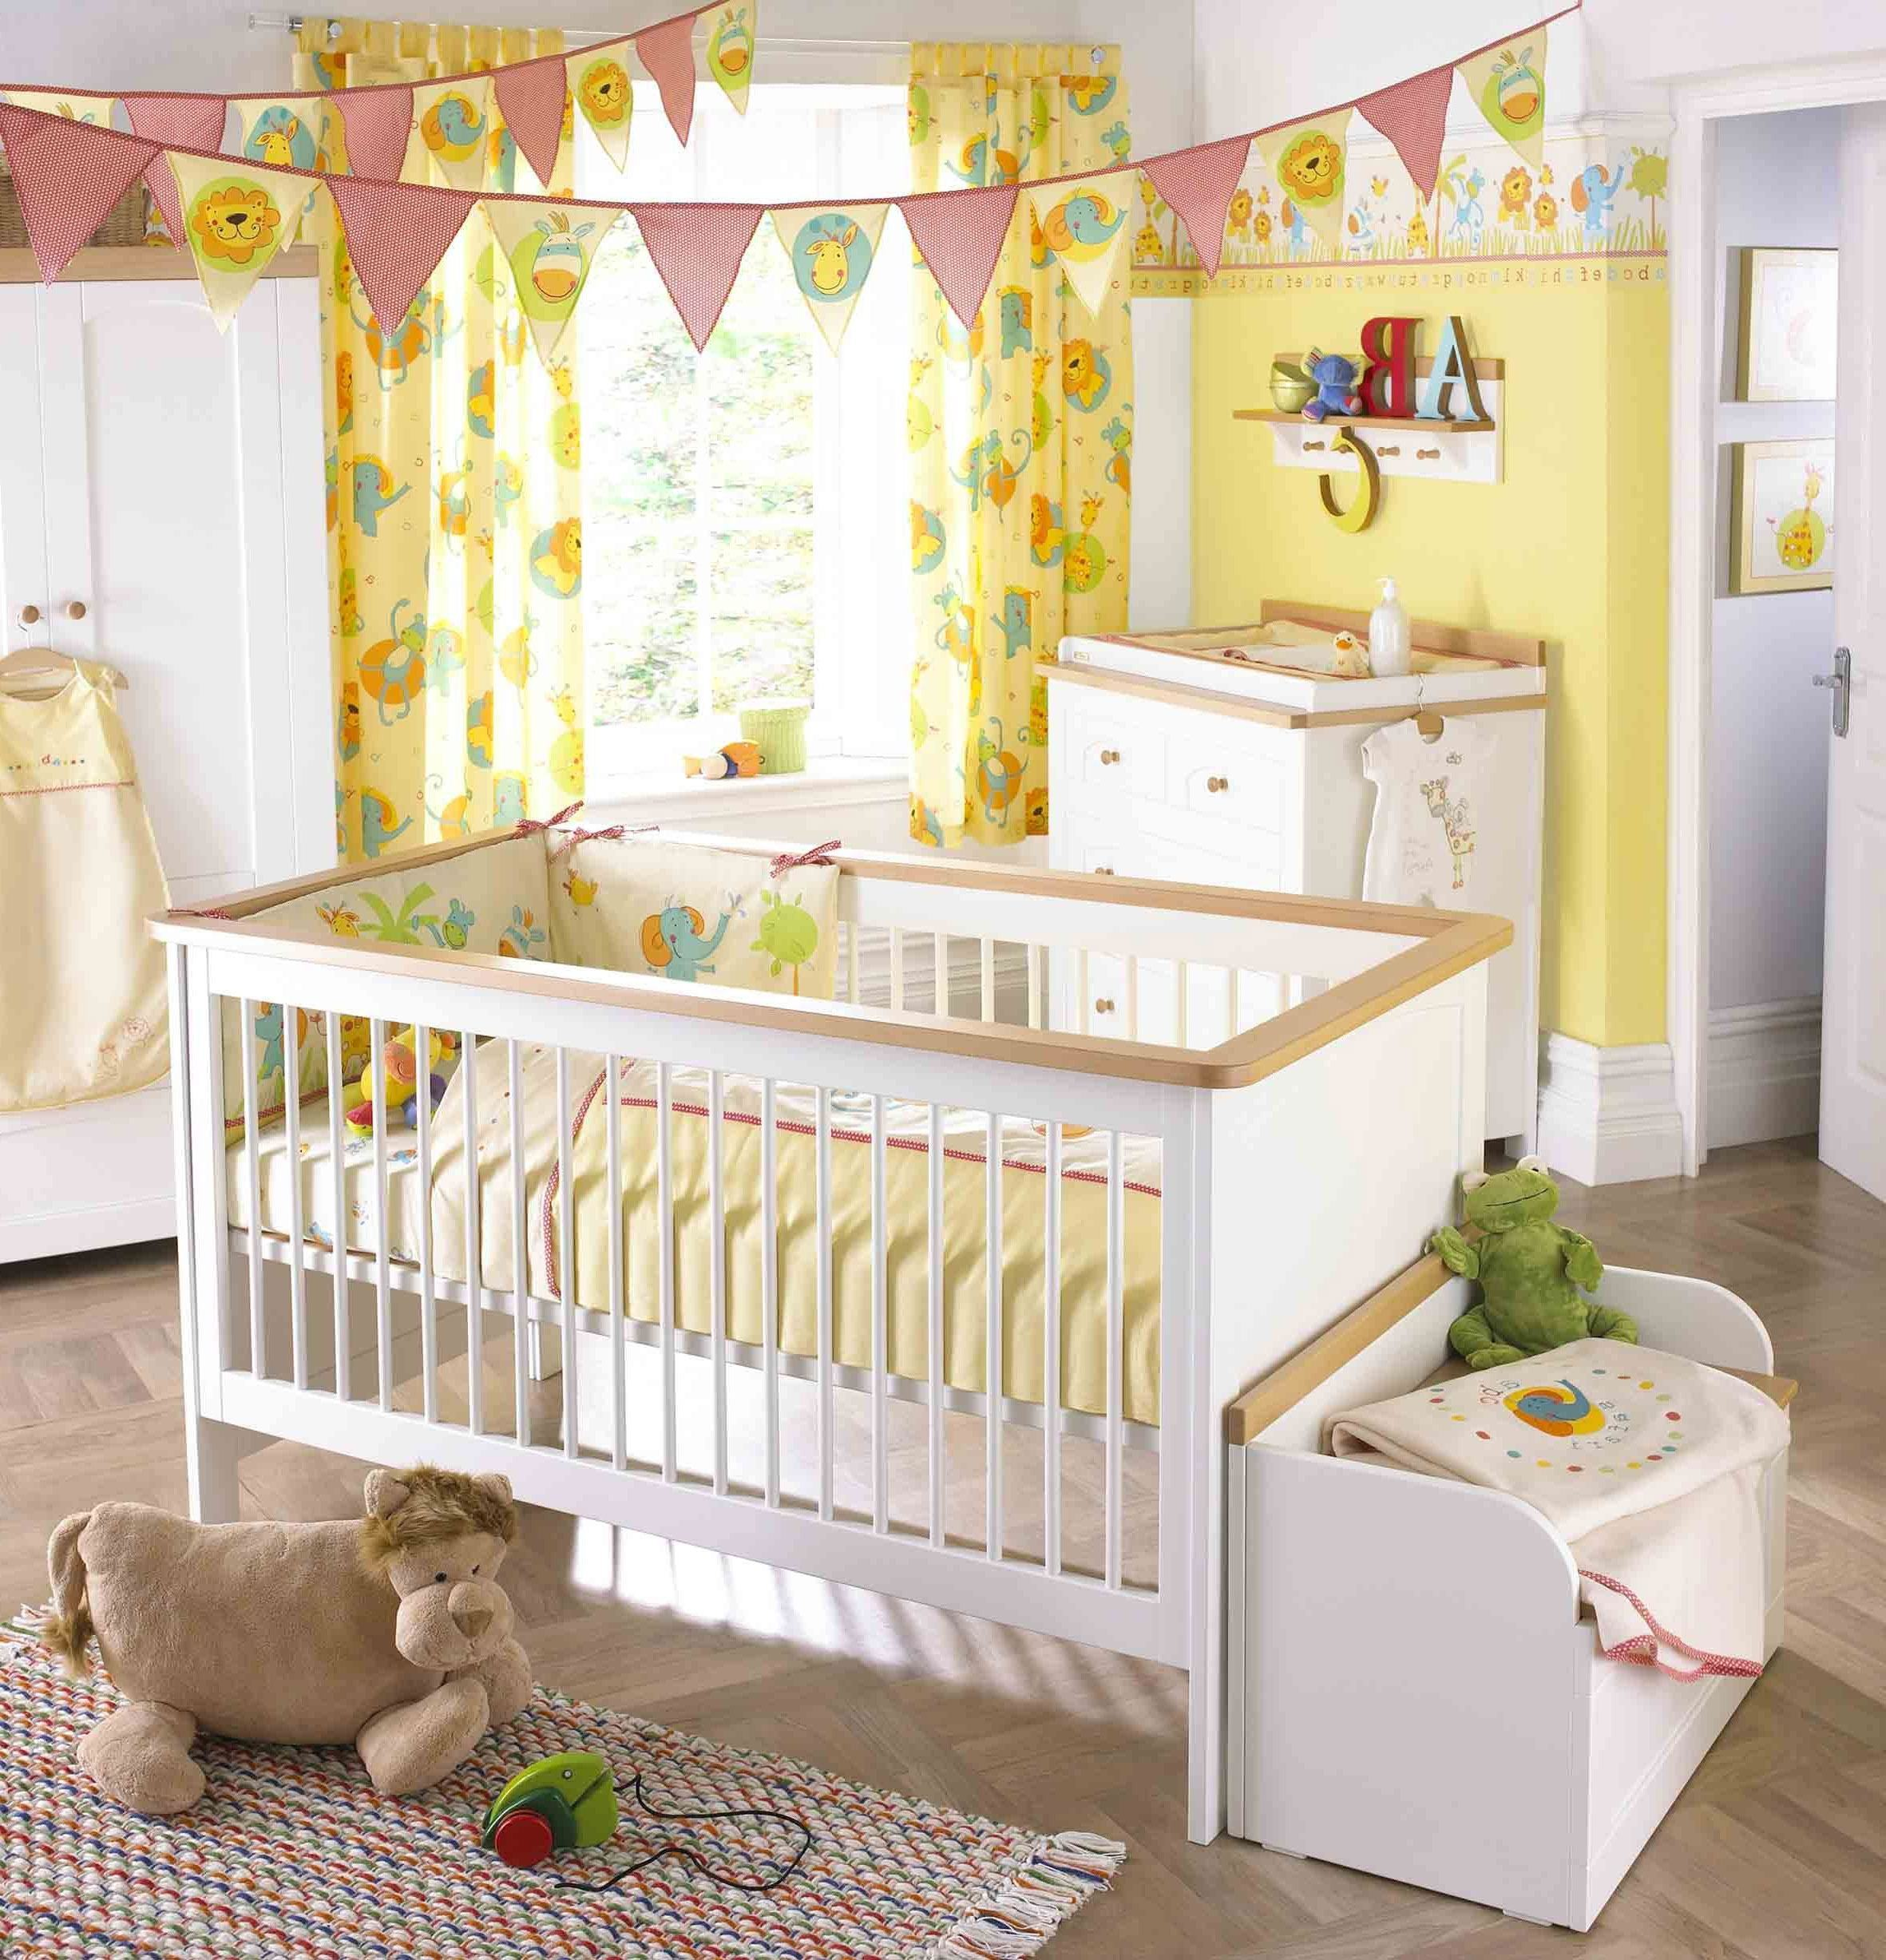 7 Baby Boy Room Ideas  Cute Boy Nursery Decorating Ideas